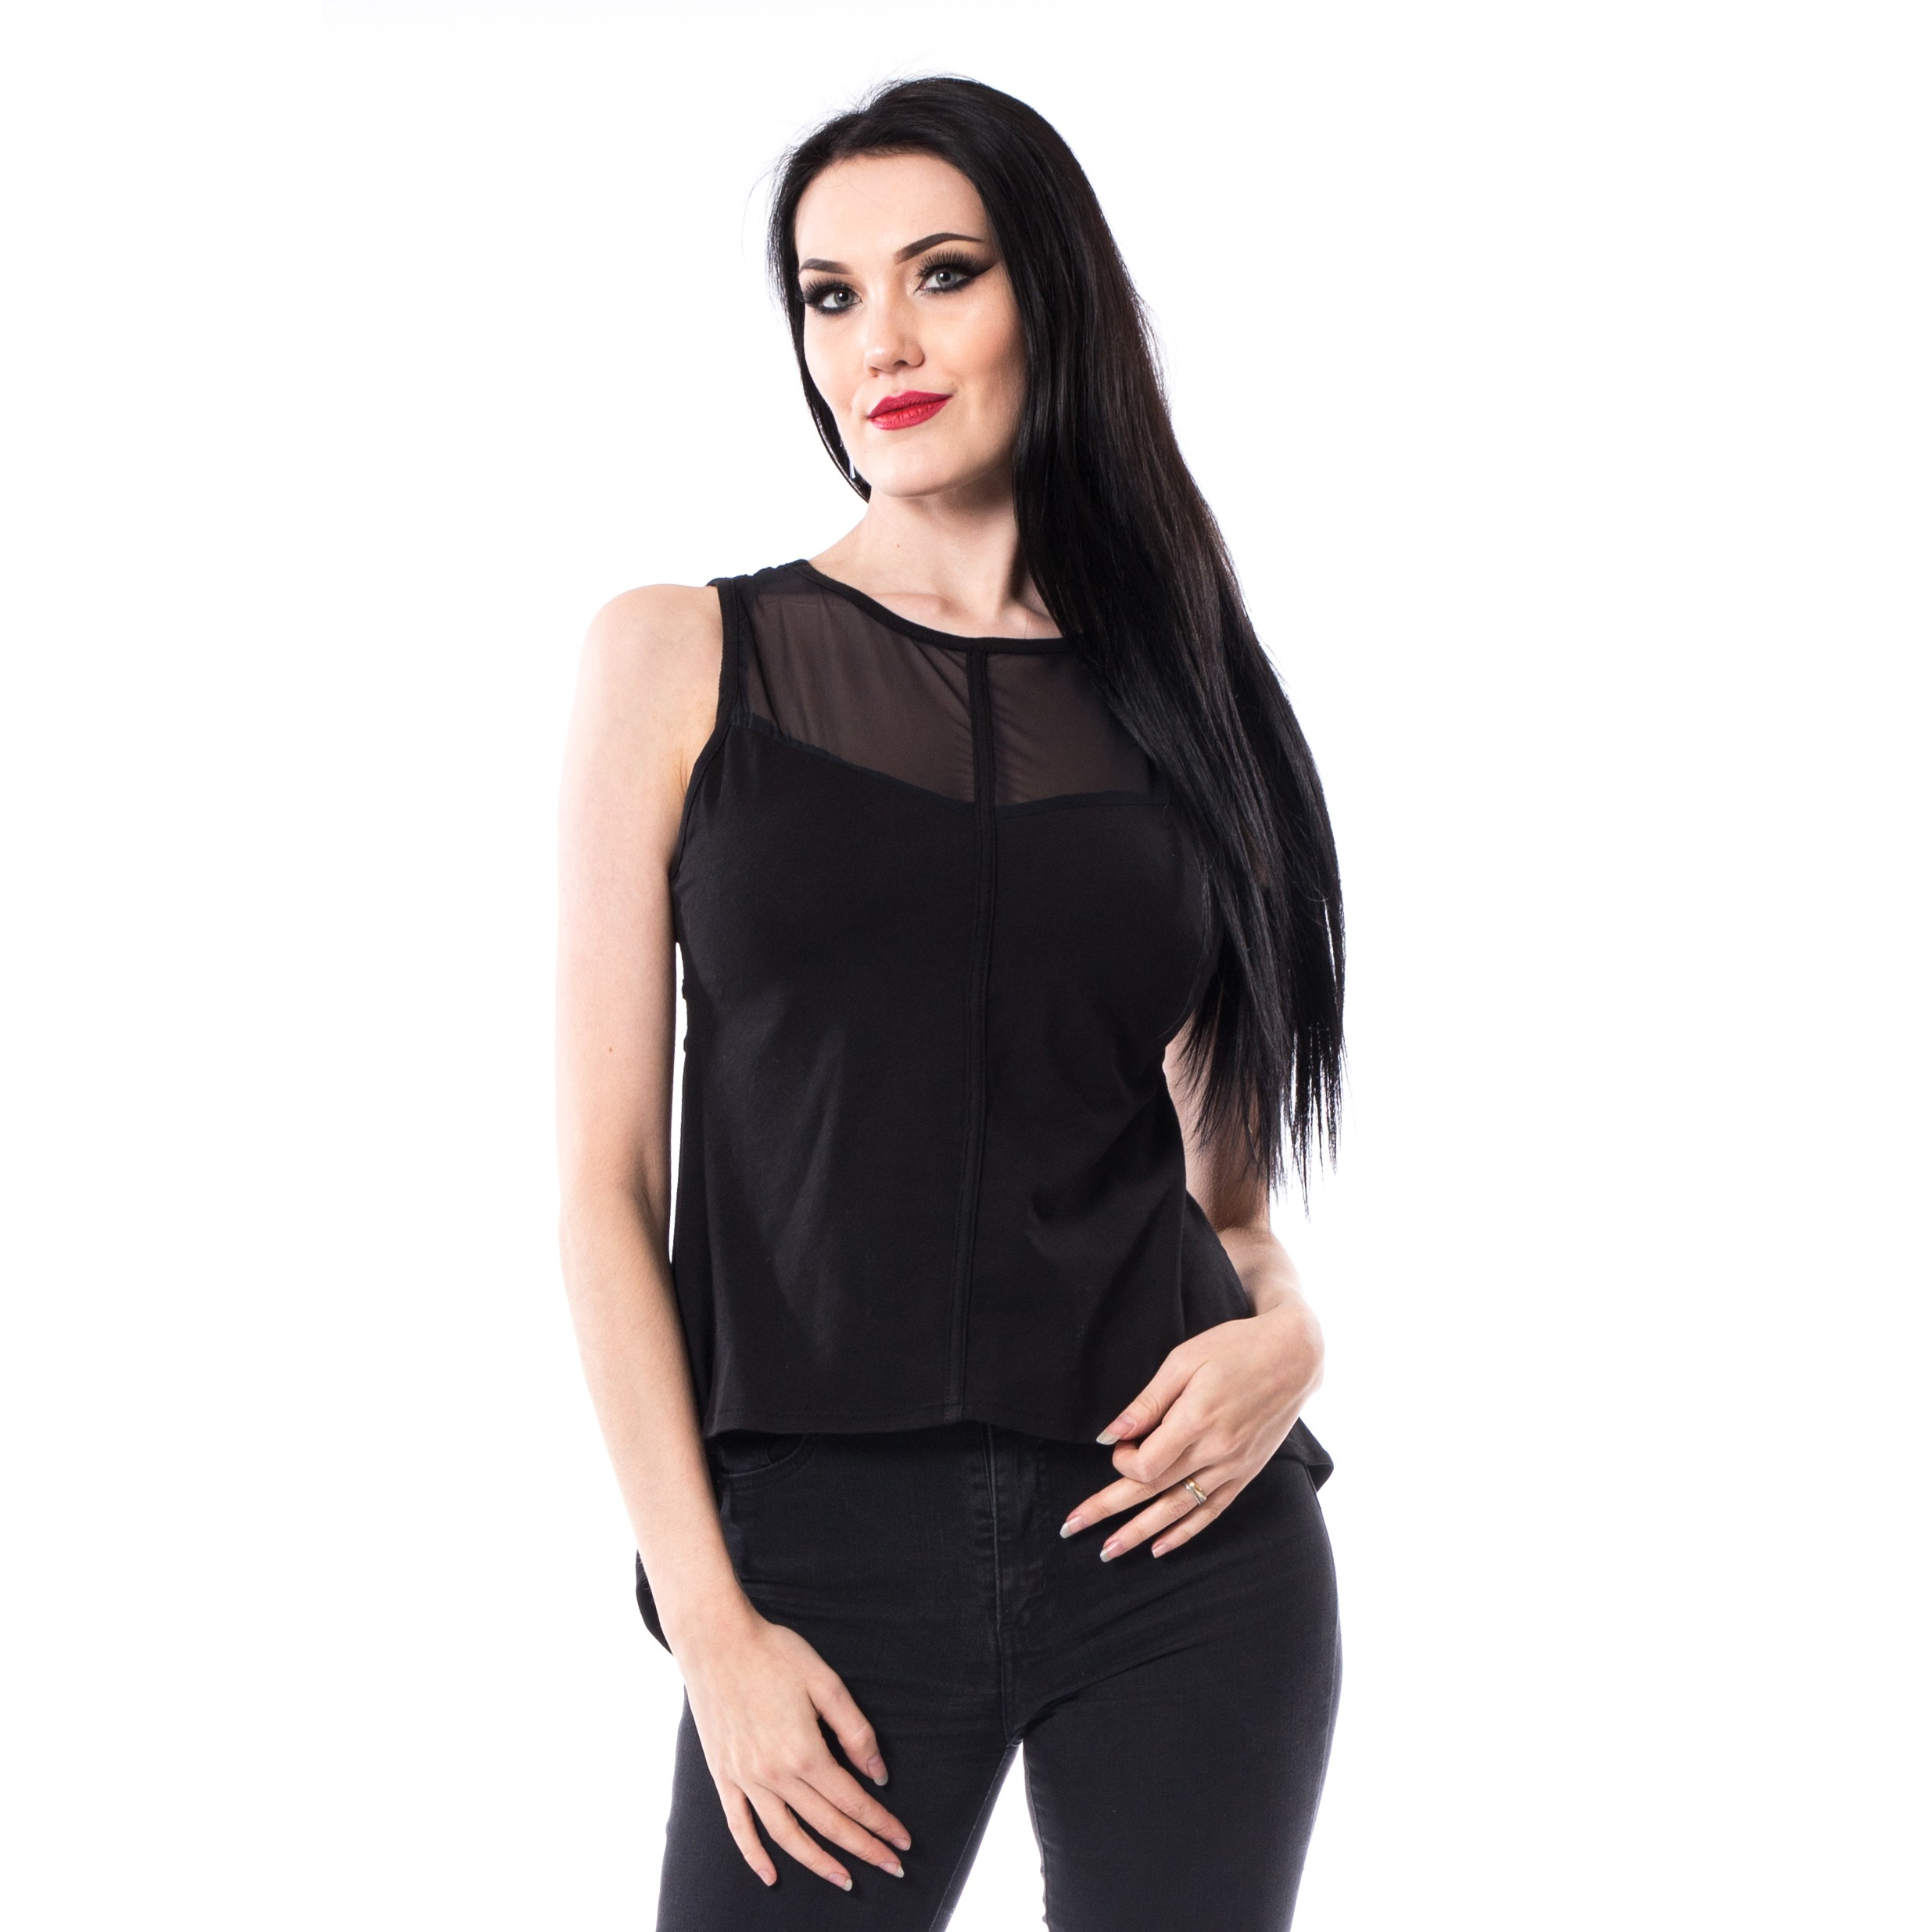 CHEMICAL BLACK - Karolina Top Ladies Black *NEW IN-a*